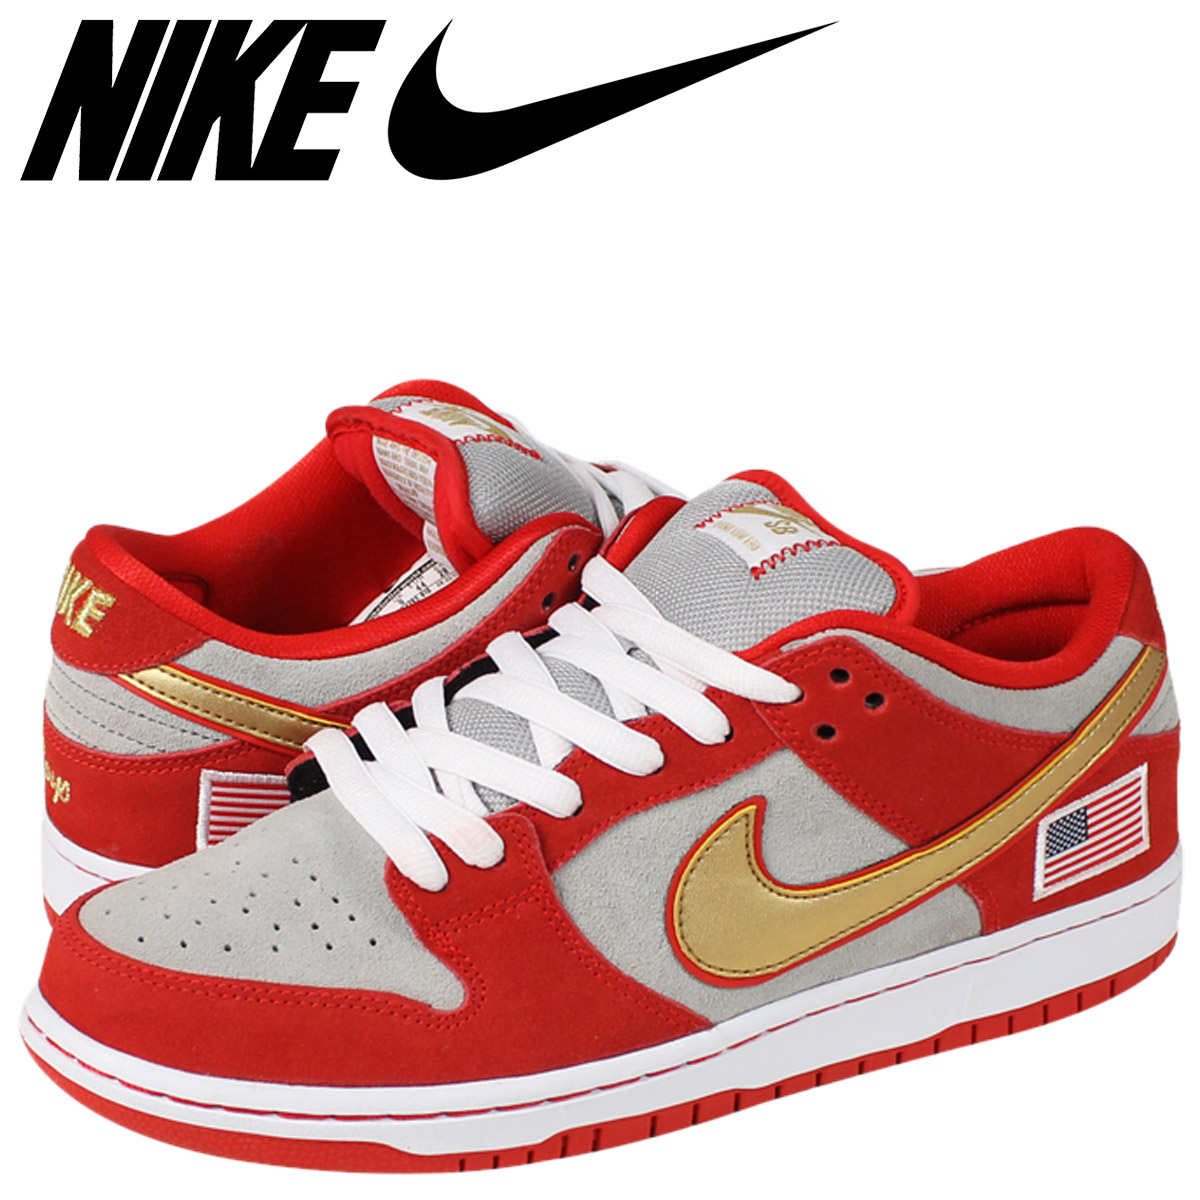 official photos 27ece e2ce3 NIKE Nike dunk sneakers DUNK LOW SB NASTY BOYS dunk low S B 304,292-610  challenge red red men